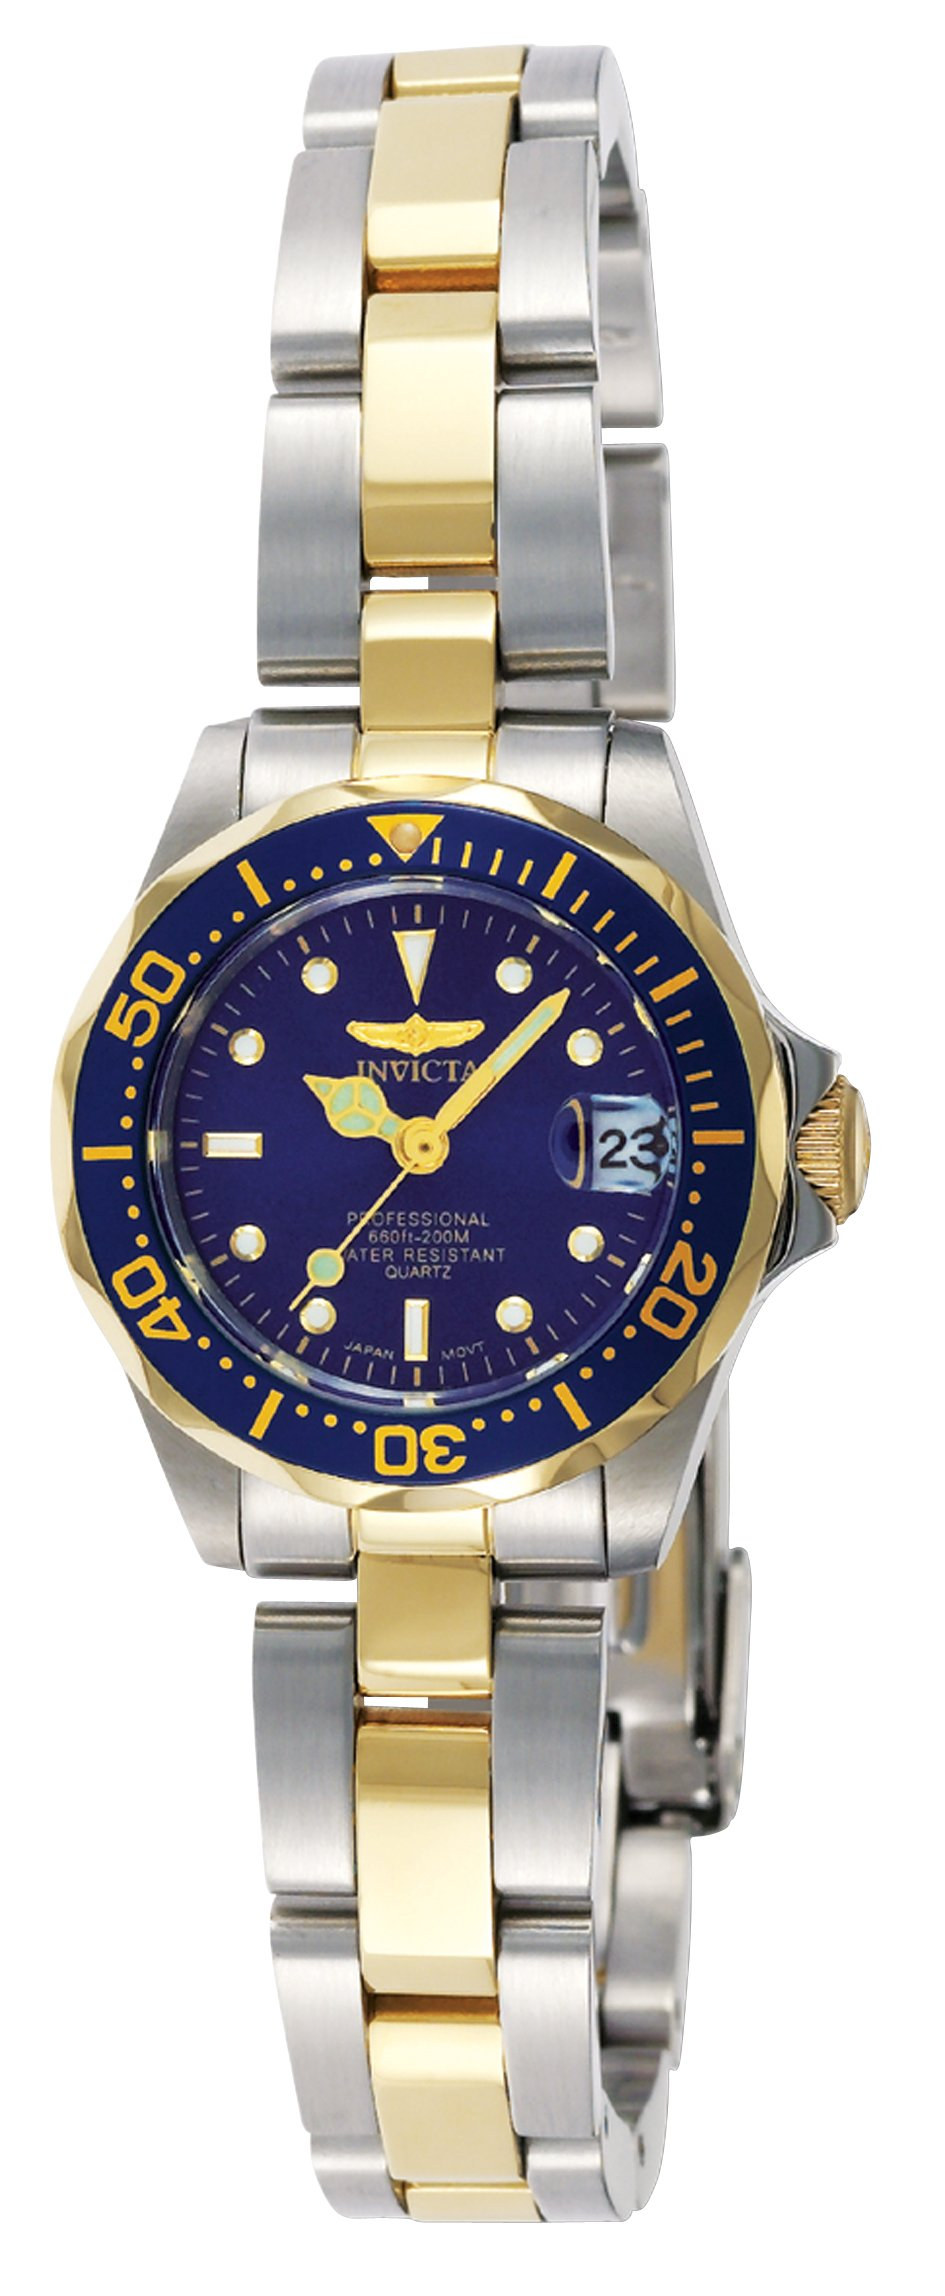 Invicta Women's INVICTA-8942 Pro Diver GQ Two-Tone Stainless Steel Watch